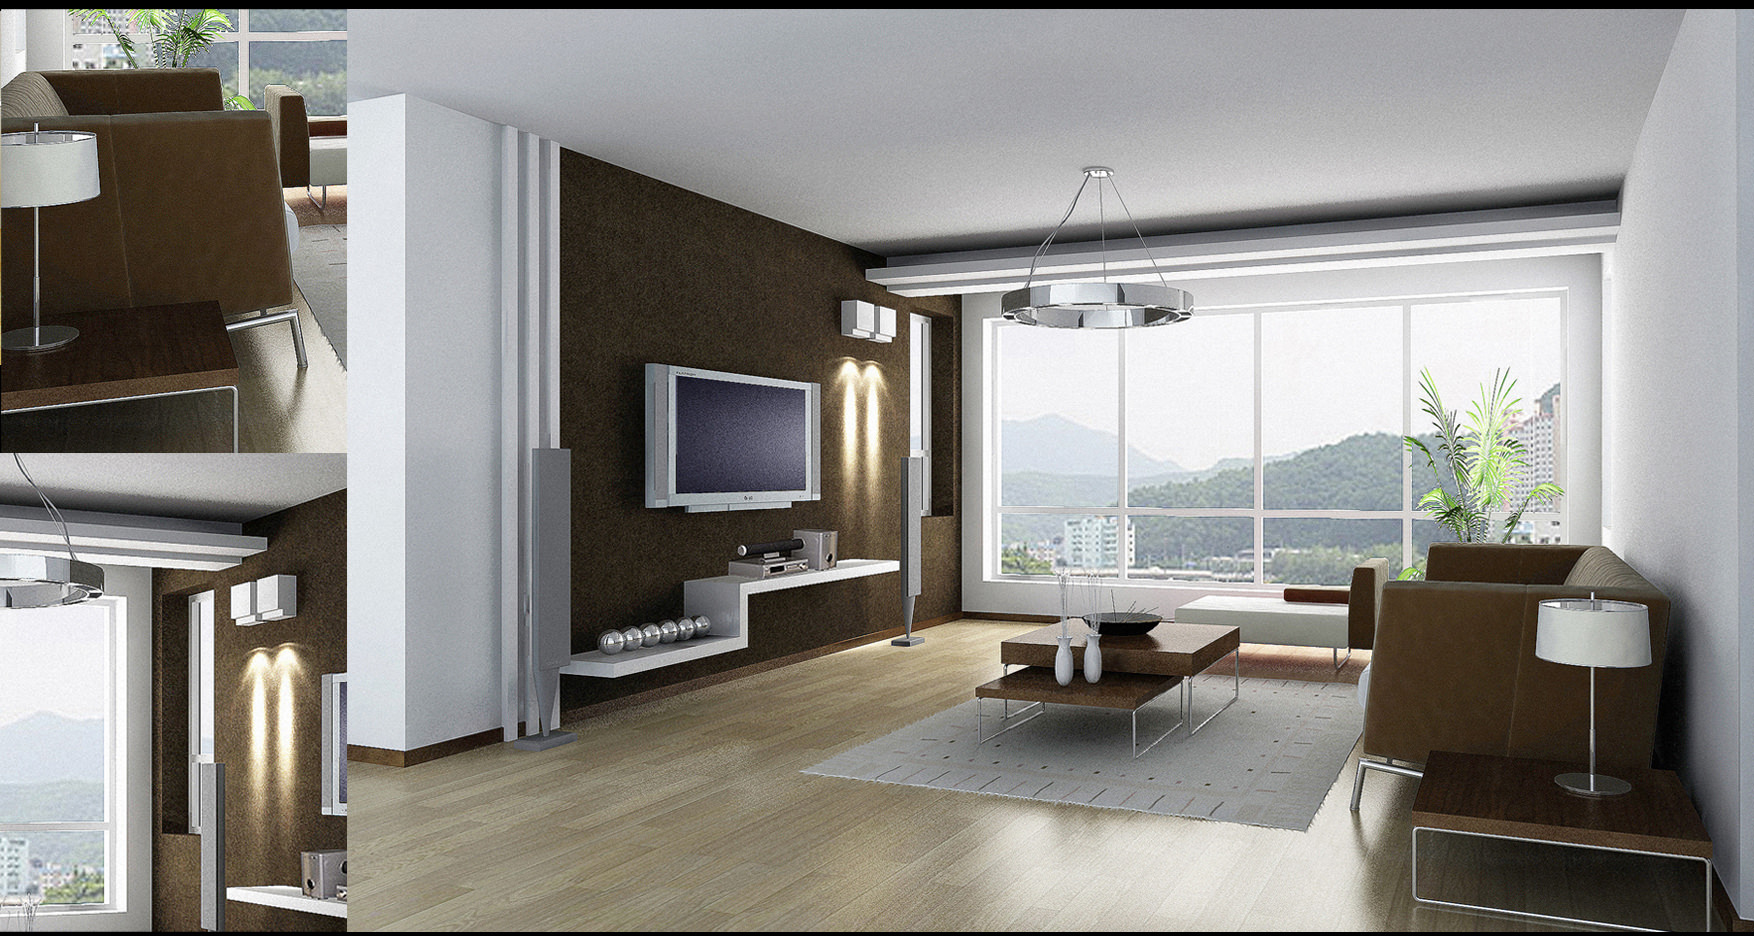 Living Room With Posh Couch And View 3d Model Max 1 ... Part 38